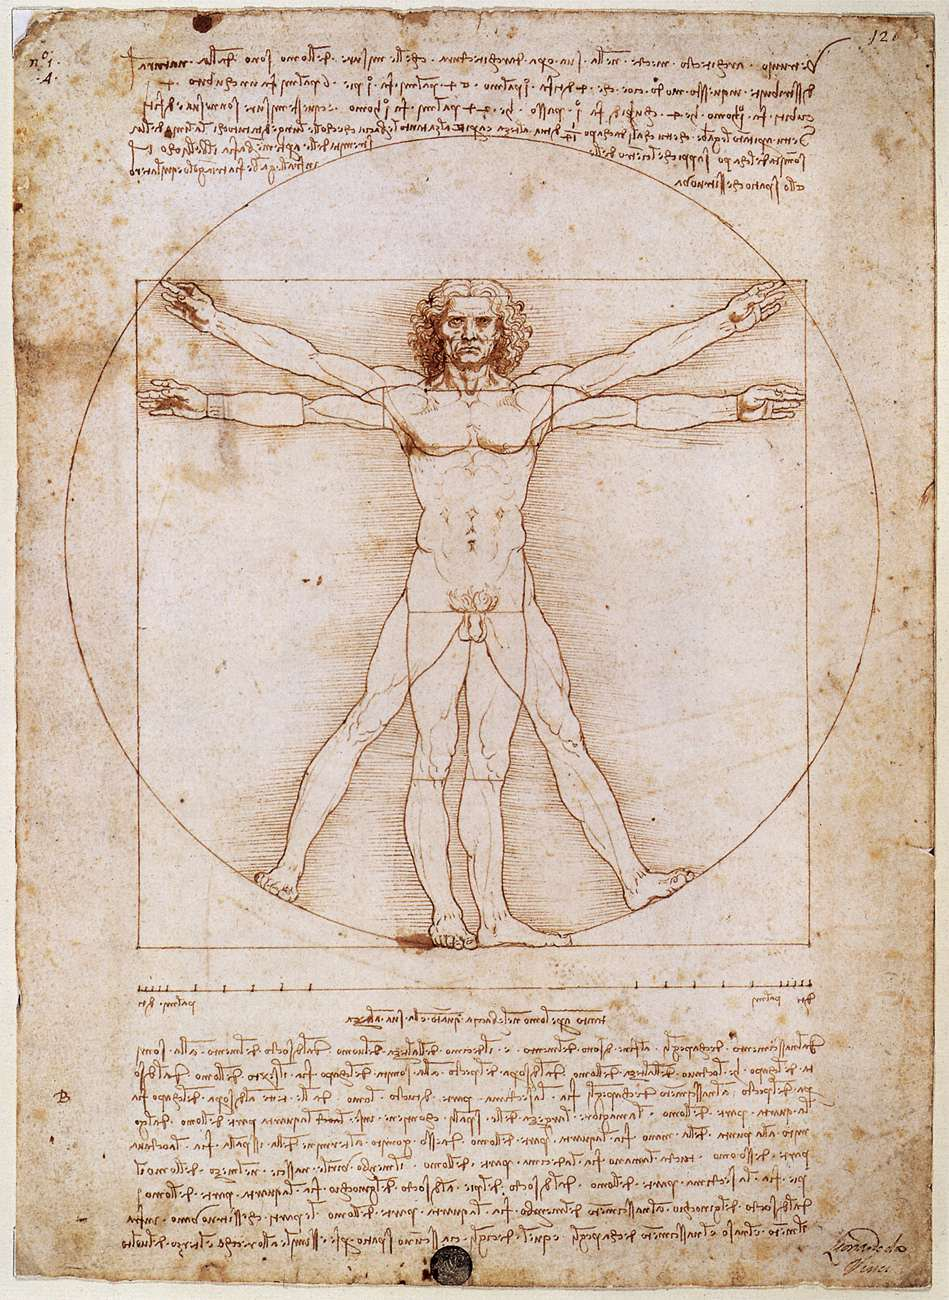 The Vitruvian Man: A guide to proportion and symmetry